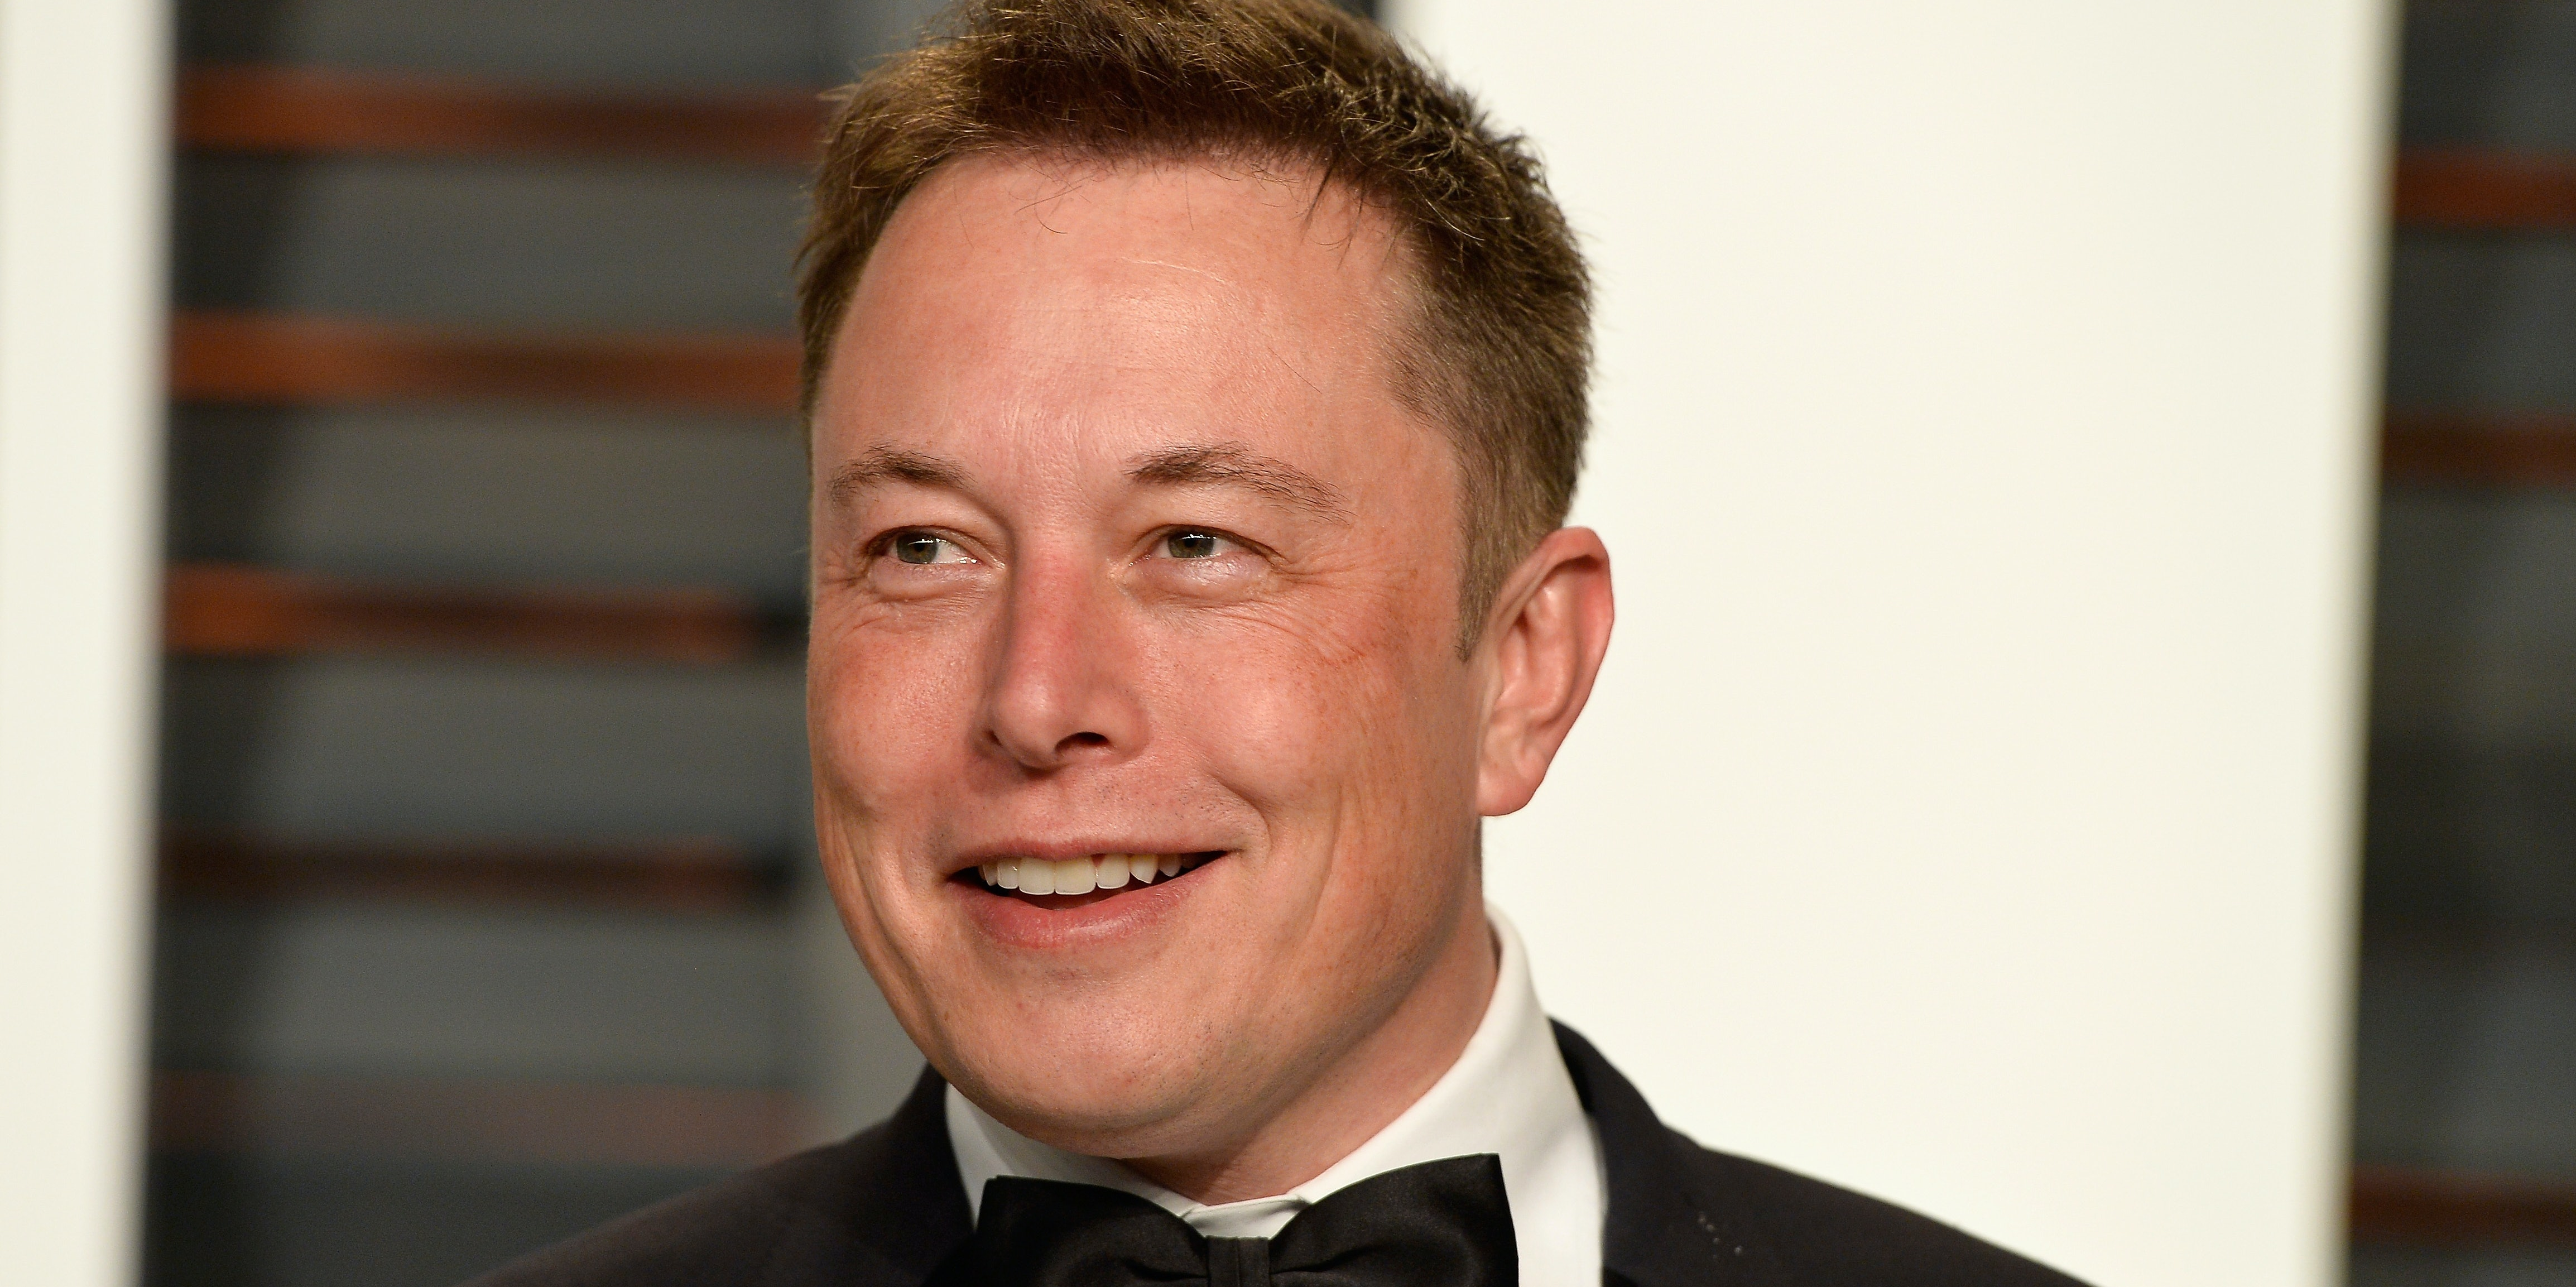 CEO of Tesla and Space X Elon Musk attends the 2015 Vanity Fair Oscar Party hosted by Graydon Carter at Wallis Annenberg Center for the Performing Arts on February 22, 2015 in Beverly Hills, California.